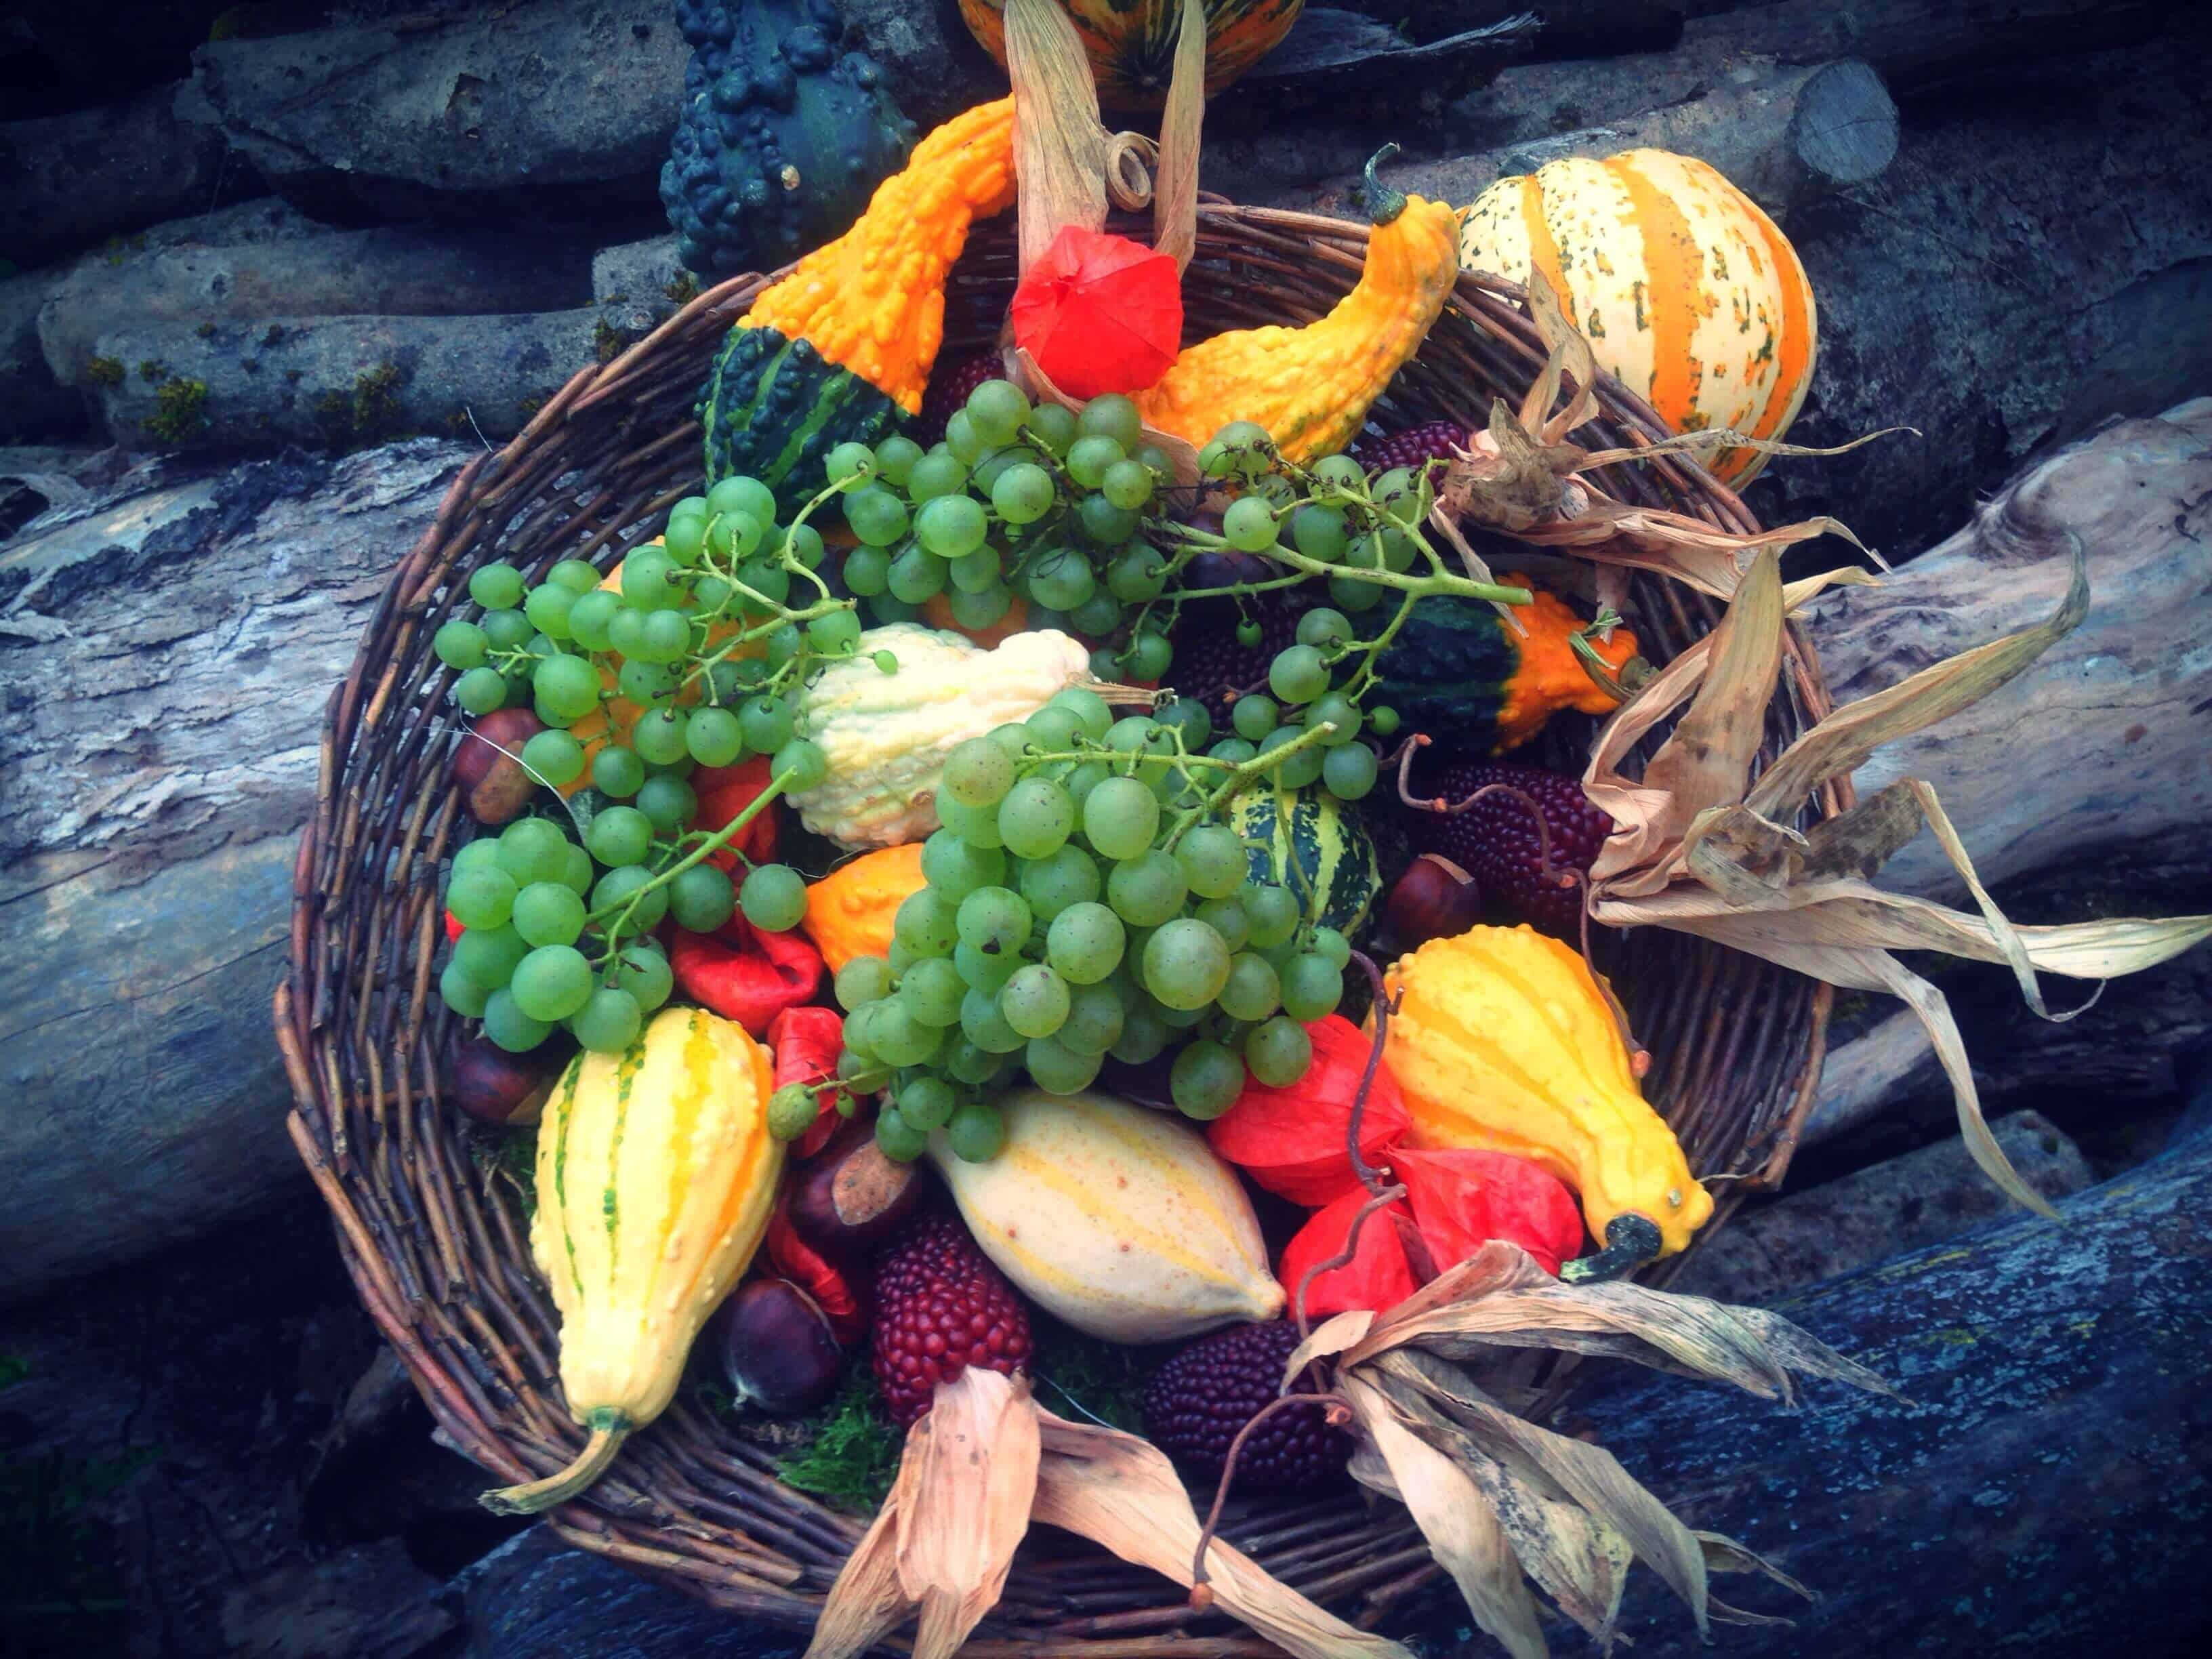 fall fruits and vegetables image